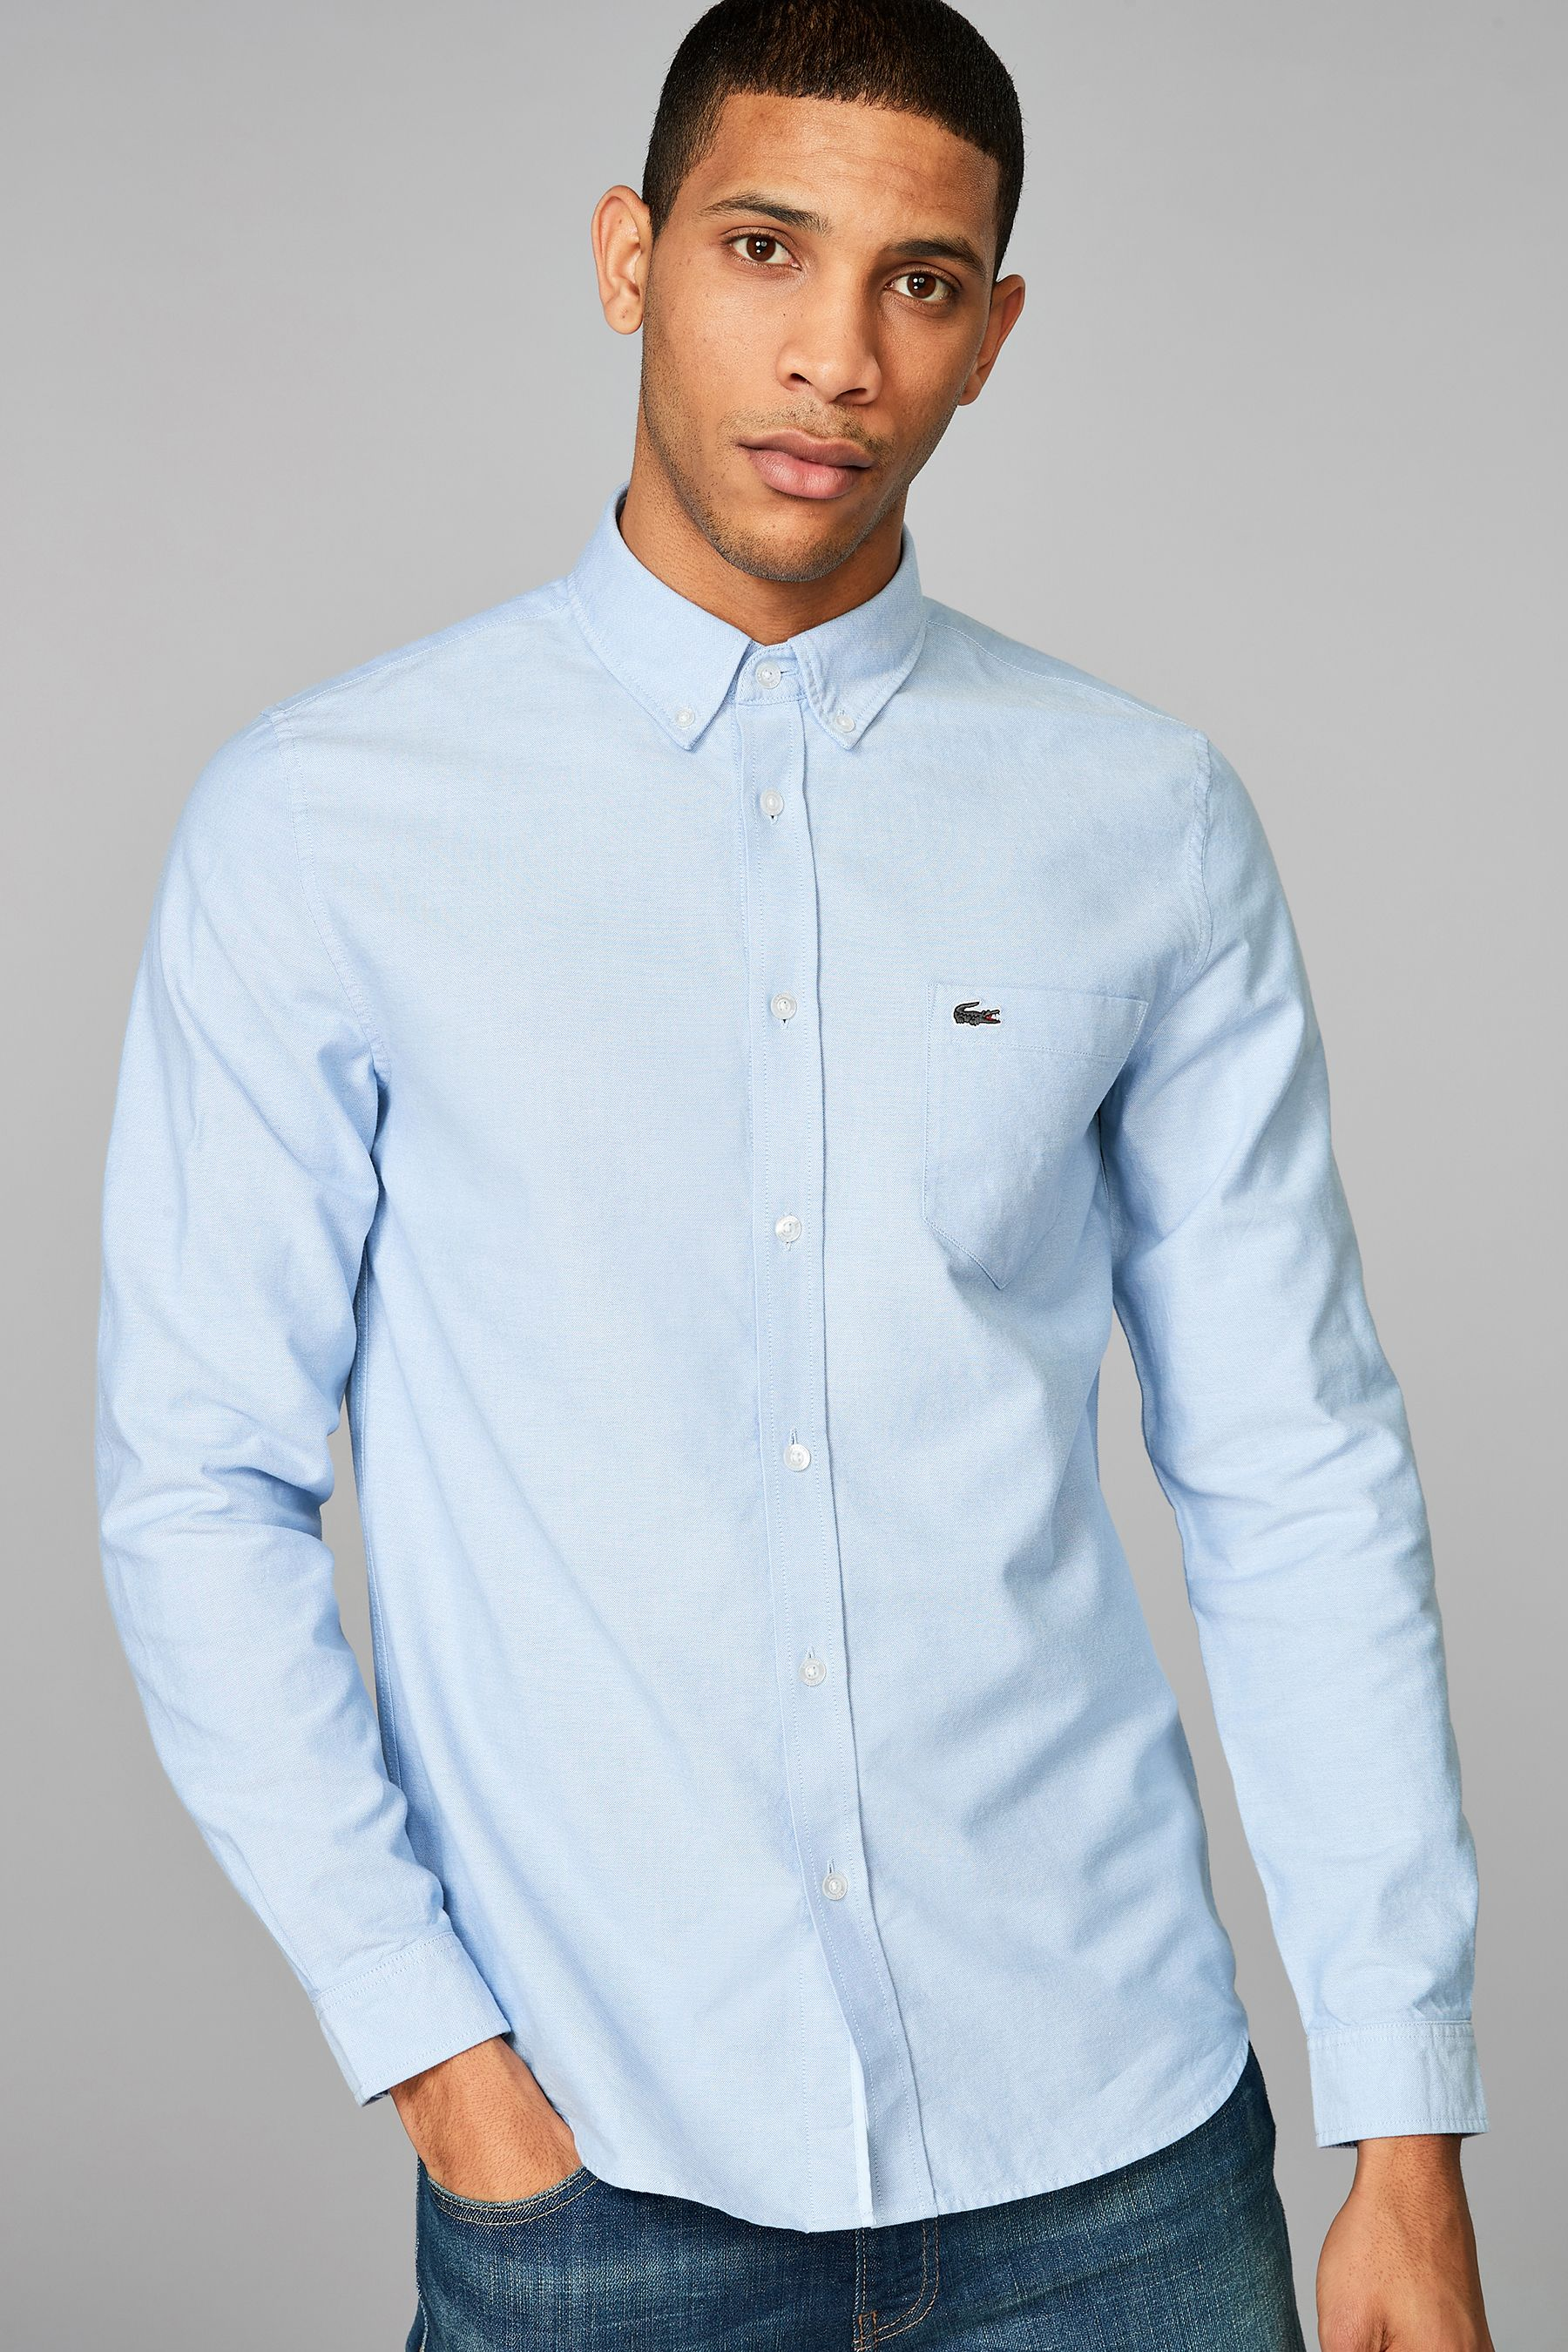 Mens Lacoste Long Sleeve Oxford Shirt